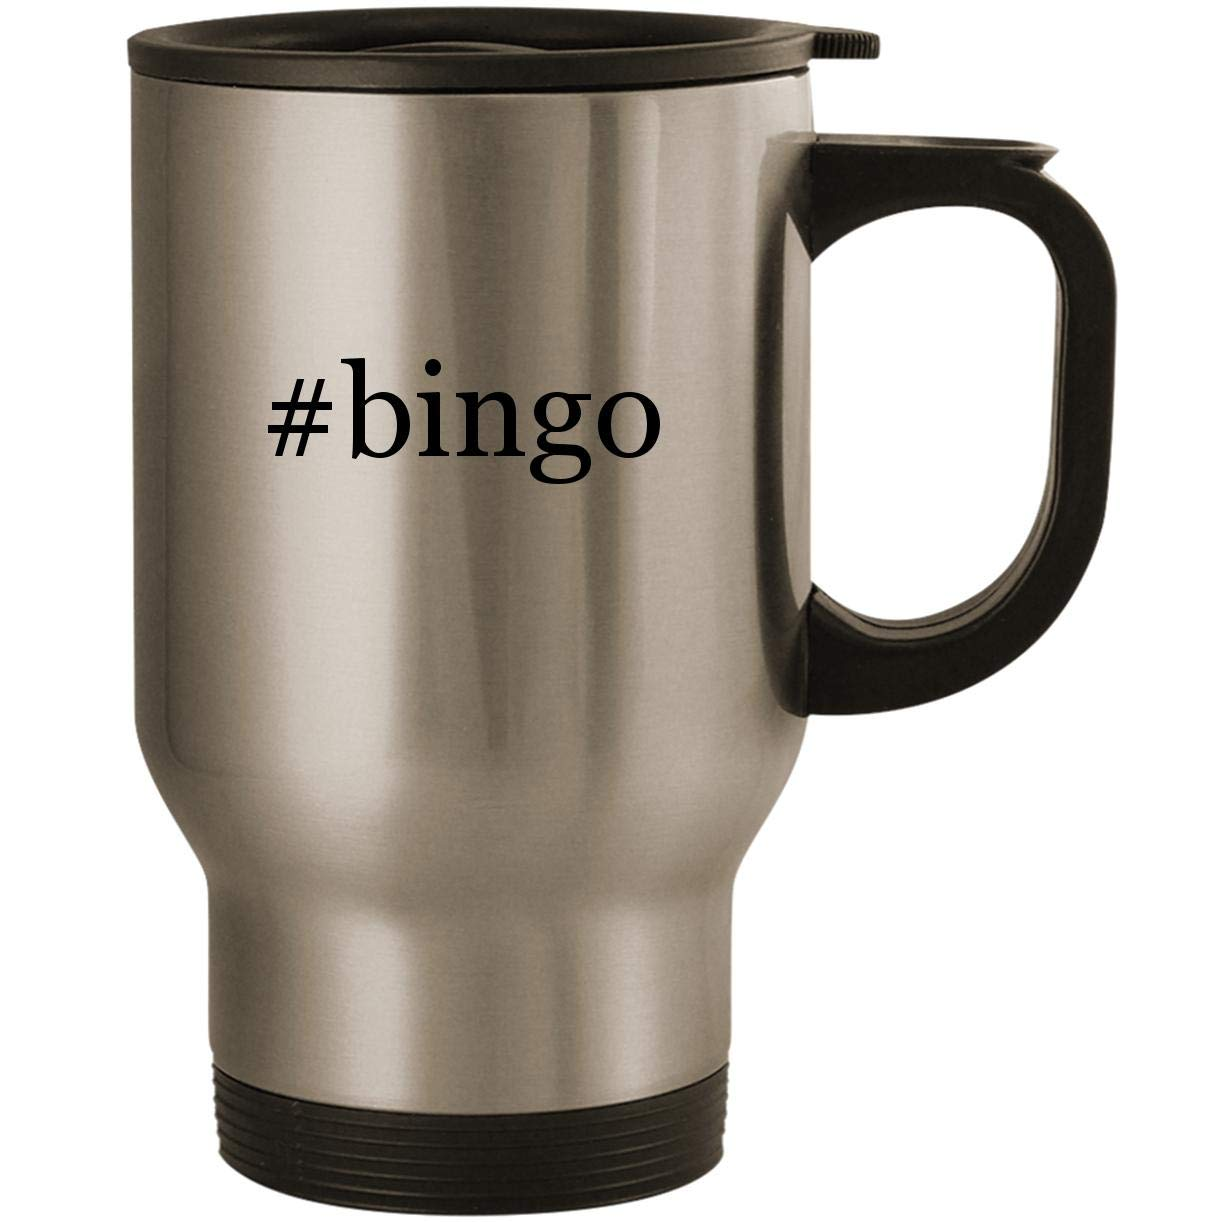 #bingo - Stainless Steel 14oz Road Ready Travel Mug, Silver by Molandra Products